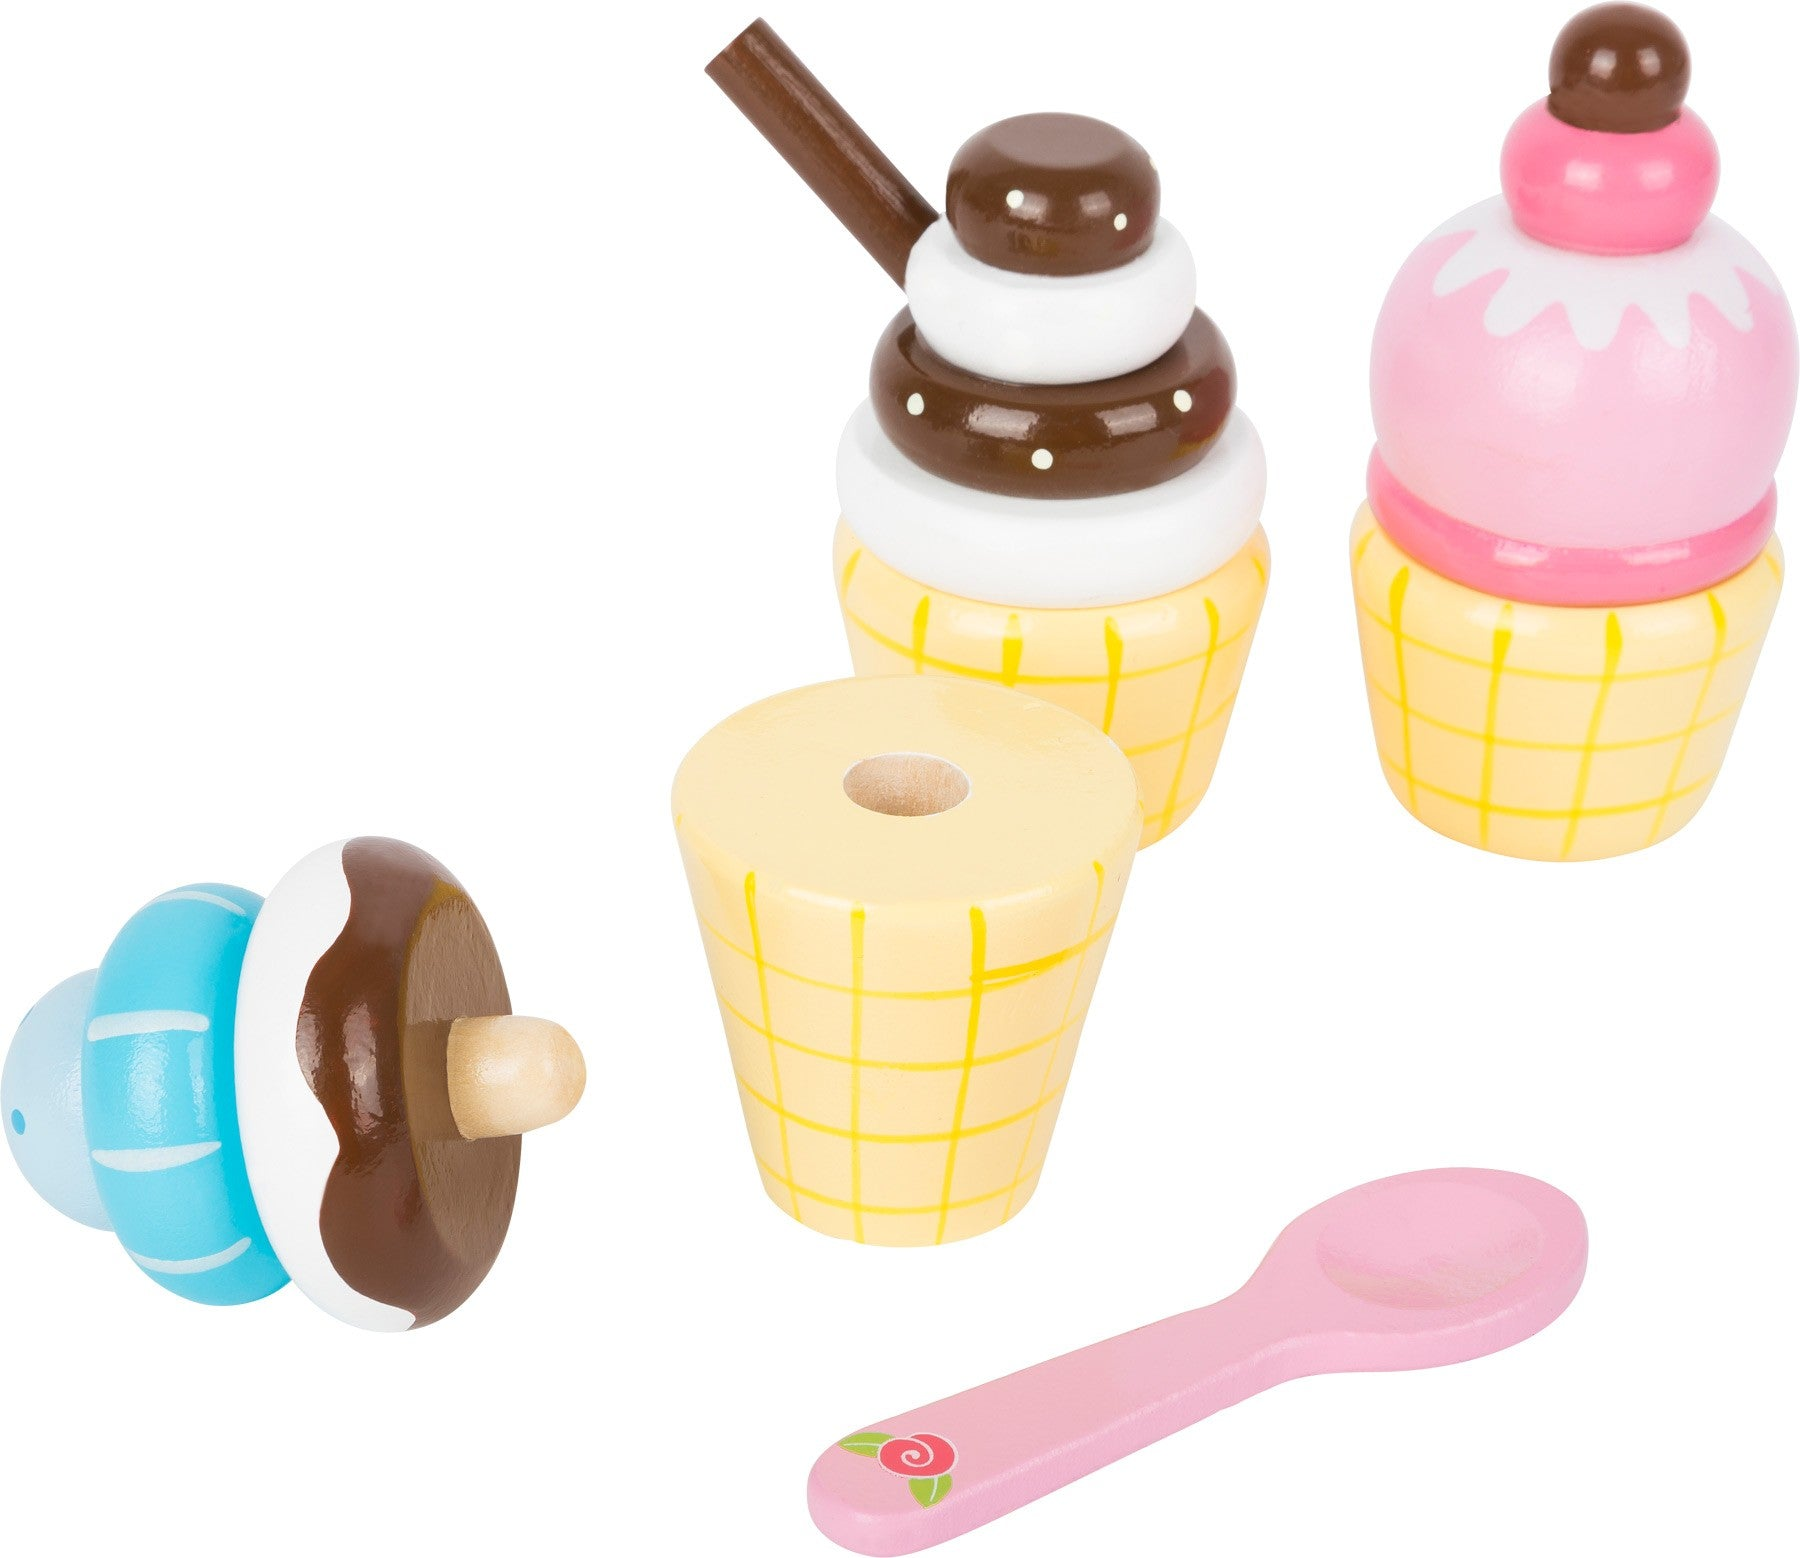 Wooden ice cream cones and holder